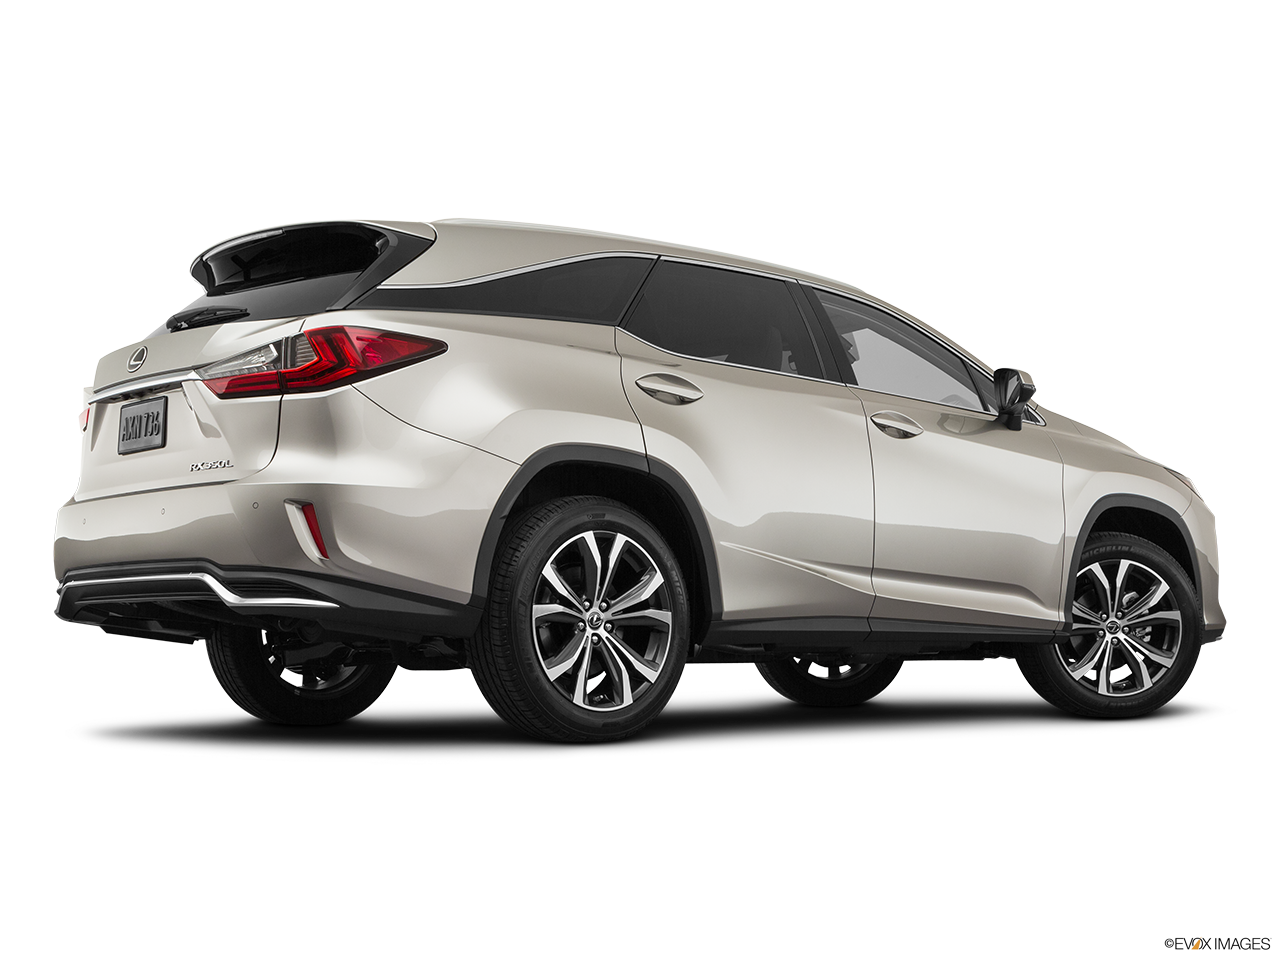 2020 Lexus RX 350L photo